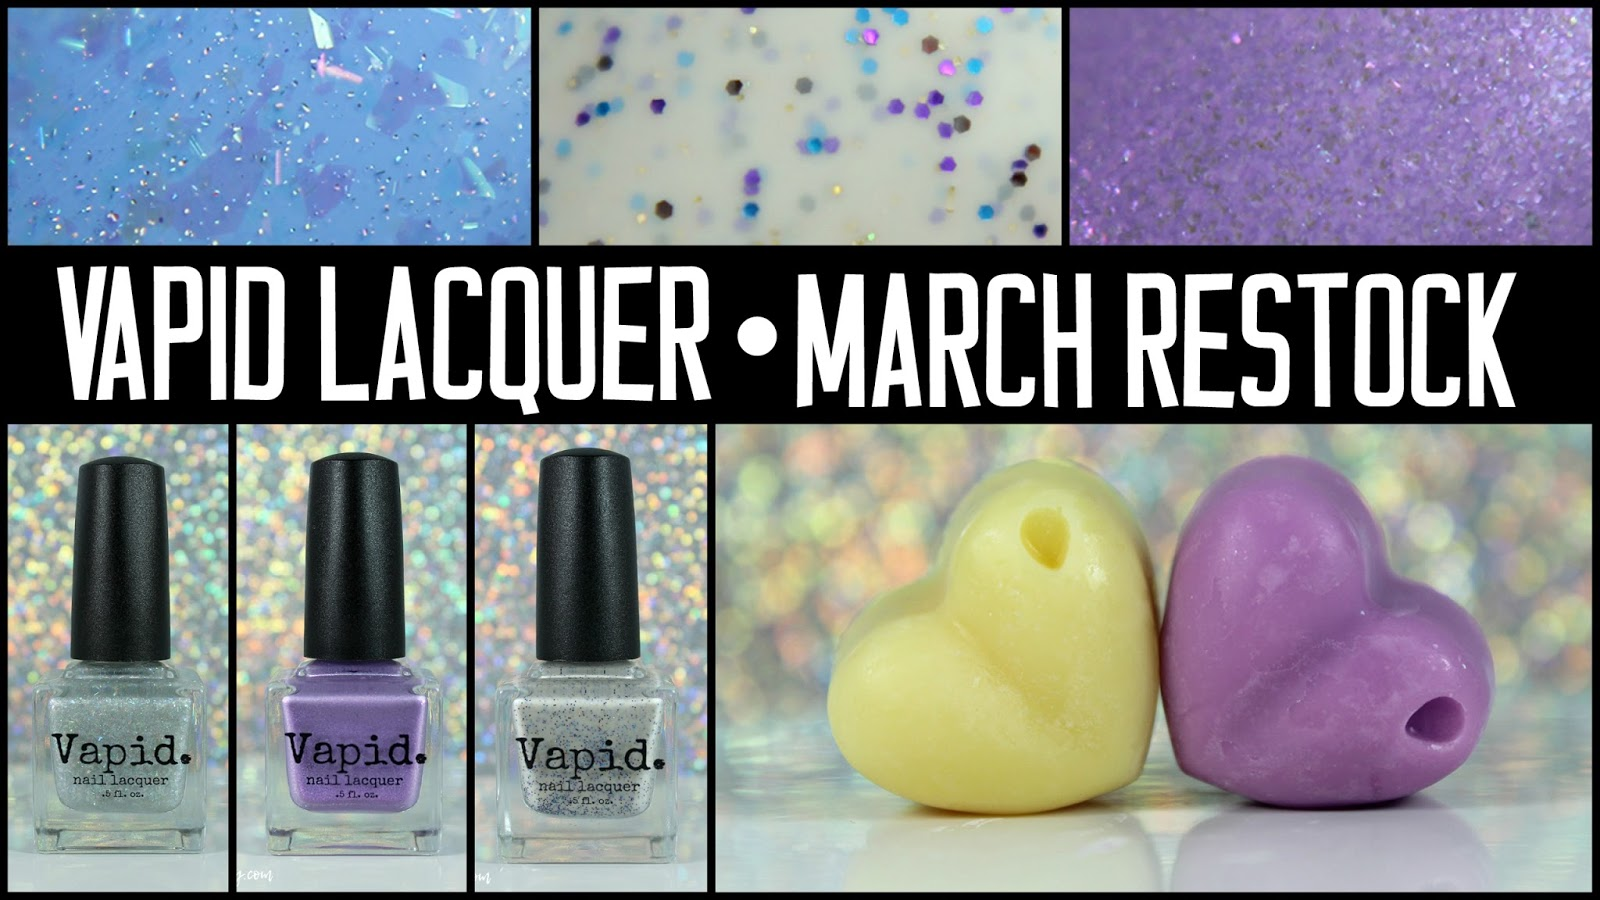 Bedlam Beauty: Vapid Lacquer | March Restock